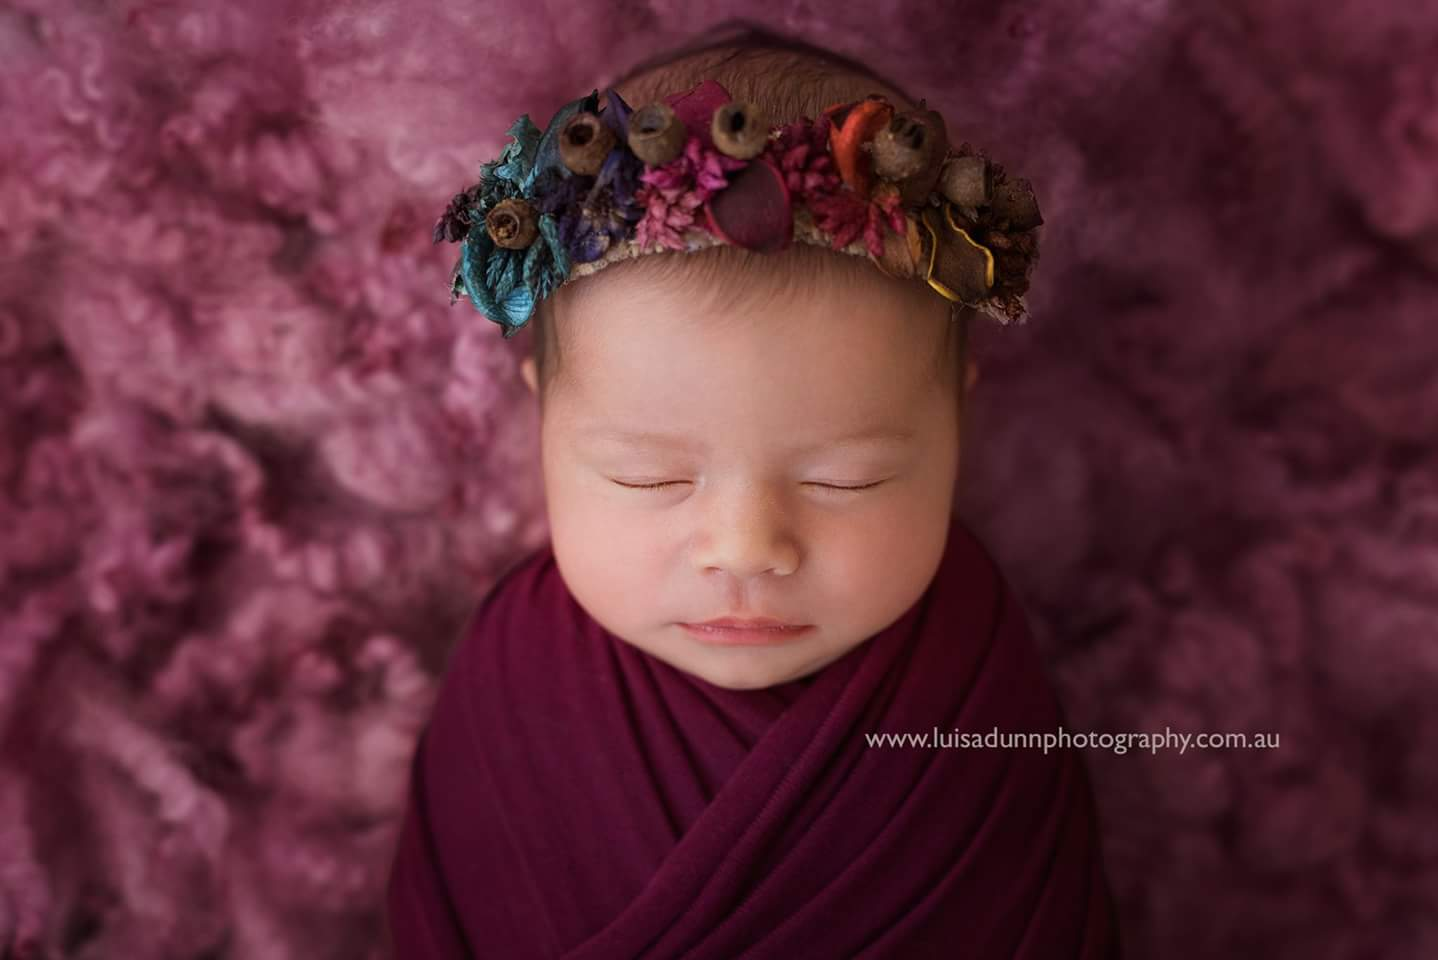 Gumnut & bloom,gumnut and bloom,Luisa Dunn,newborn photo props,